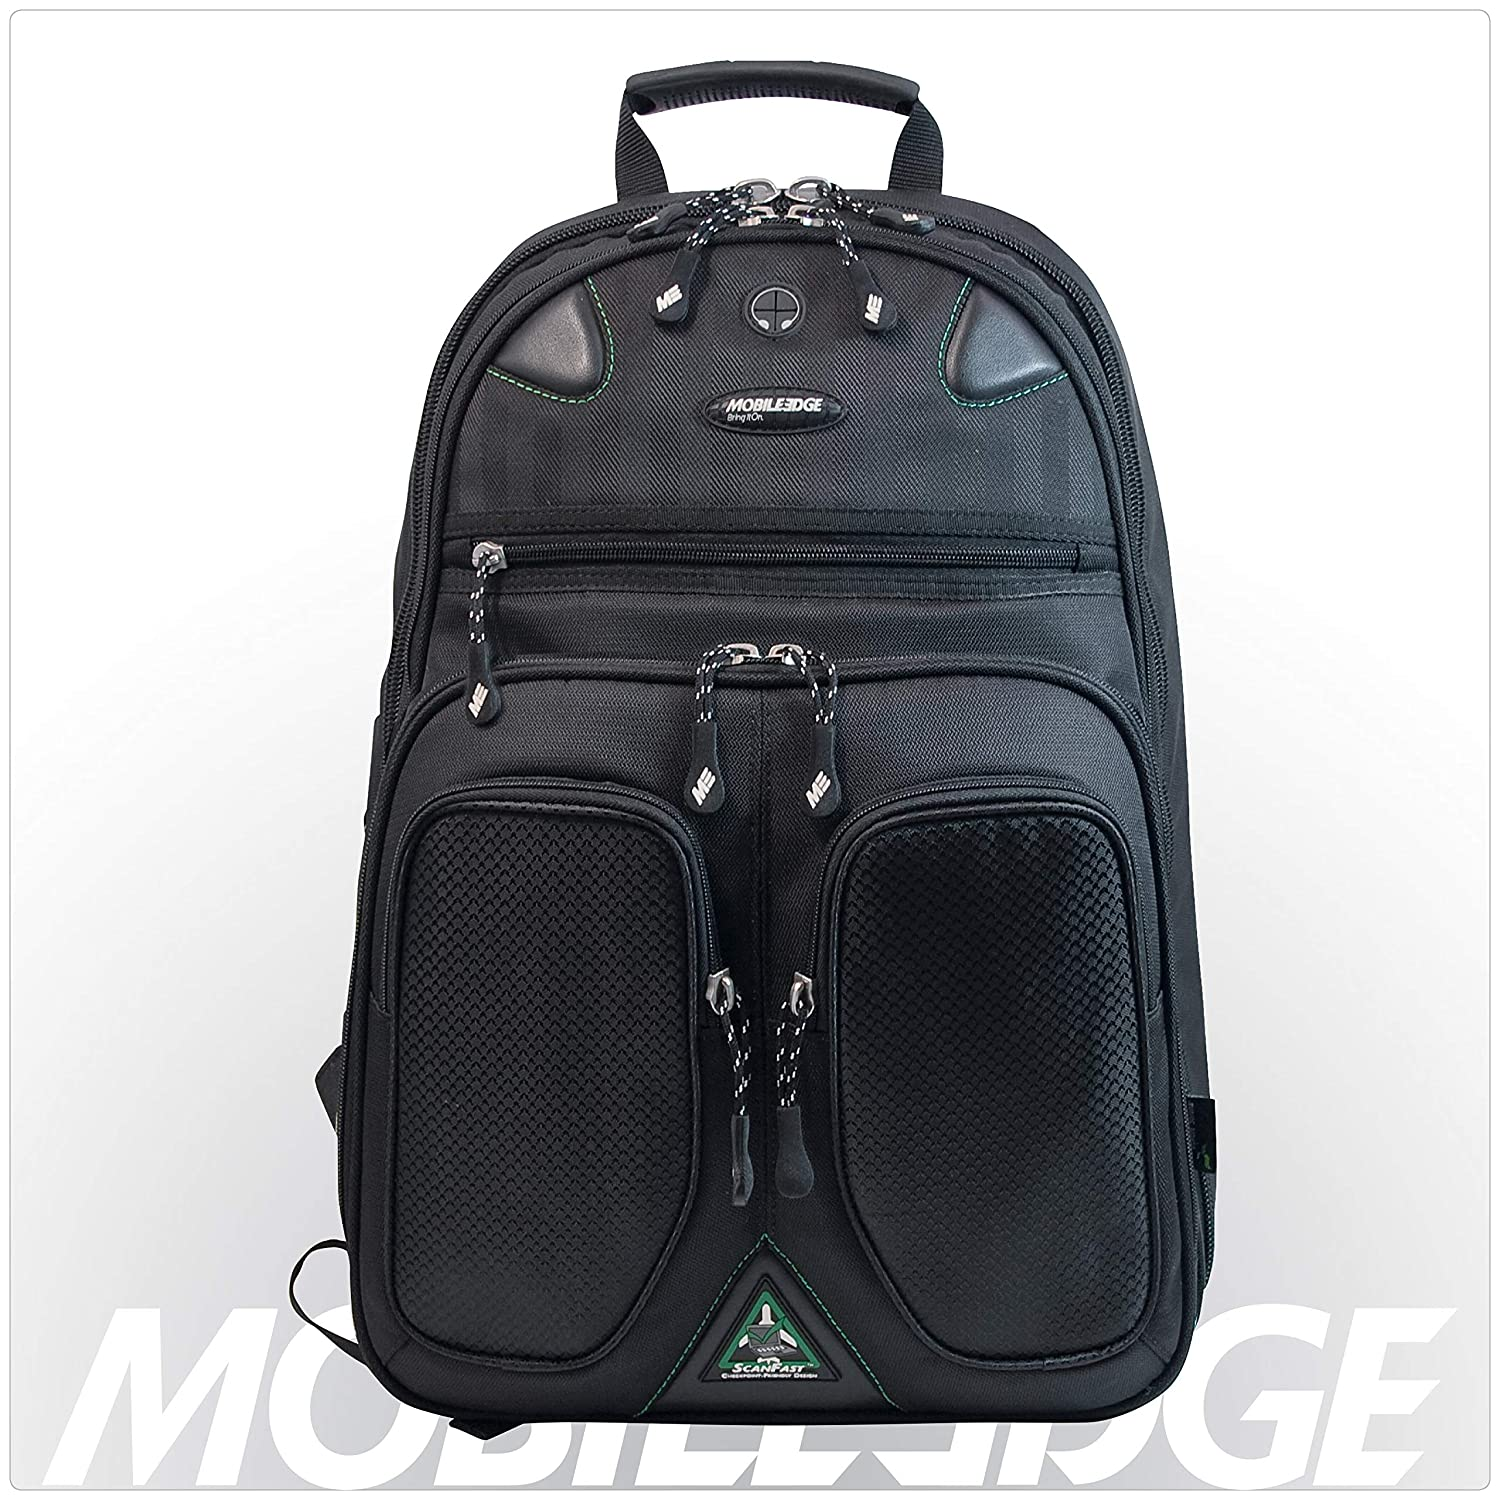 d9609f1fae80 Mobile Edge ScanFast Checkpoint and Eco Friendly Laptop Backpack 16 Inch  PC, 17 Inch Mac for Men, Women, Business Travel, Student, Black MESFBP2.0